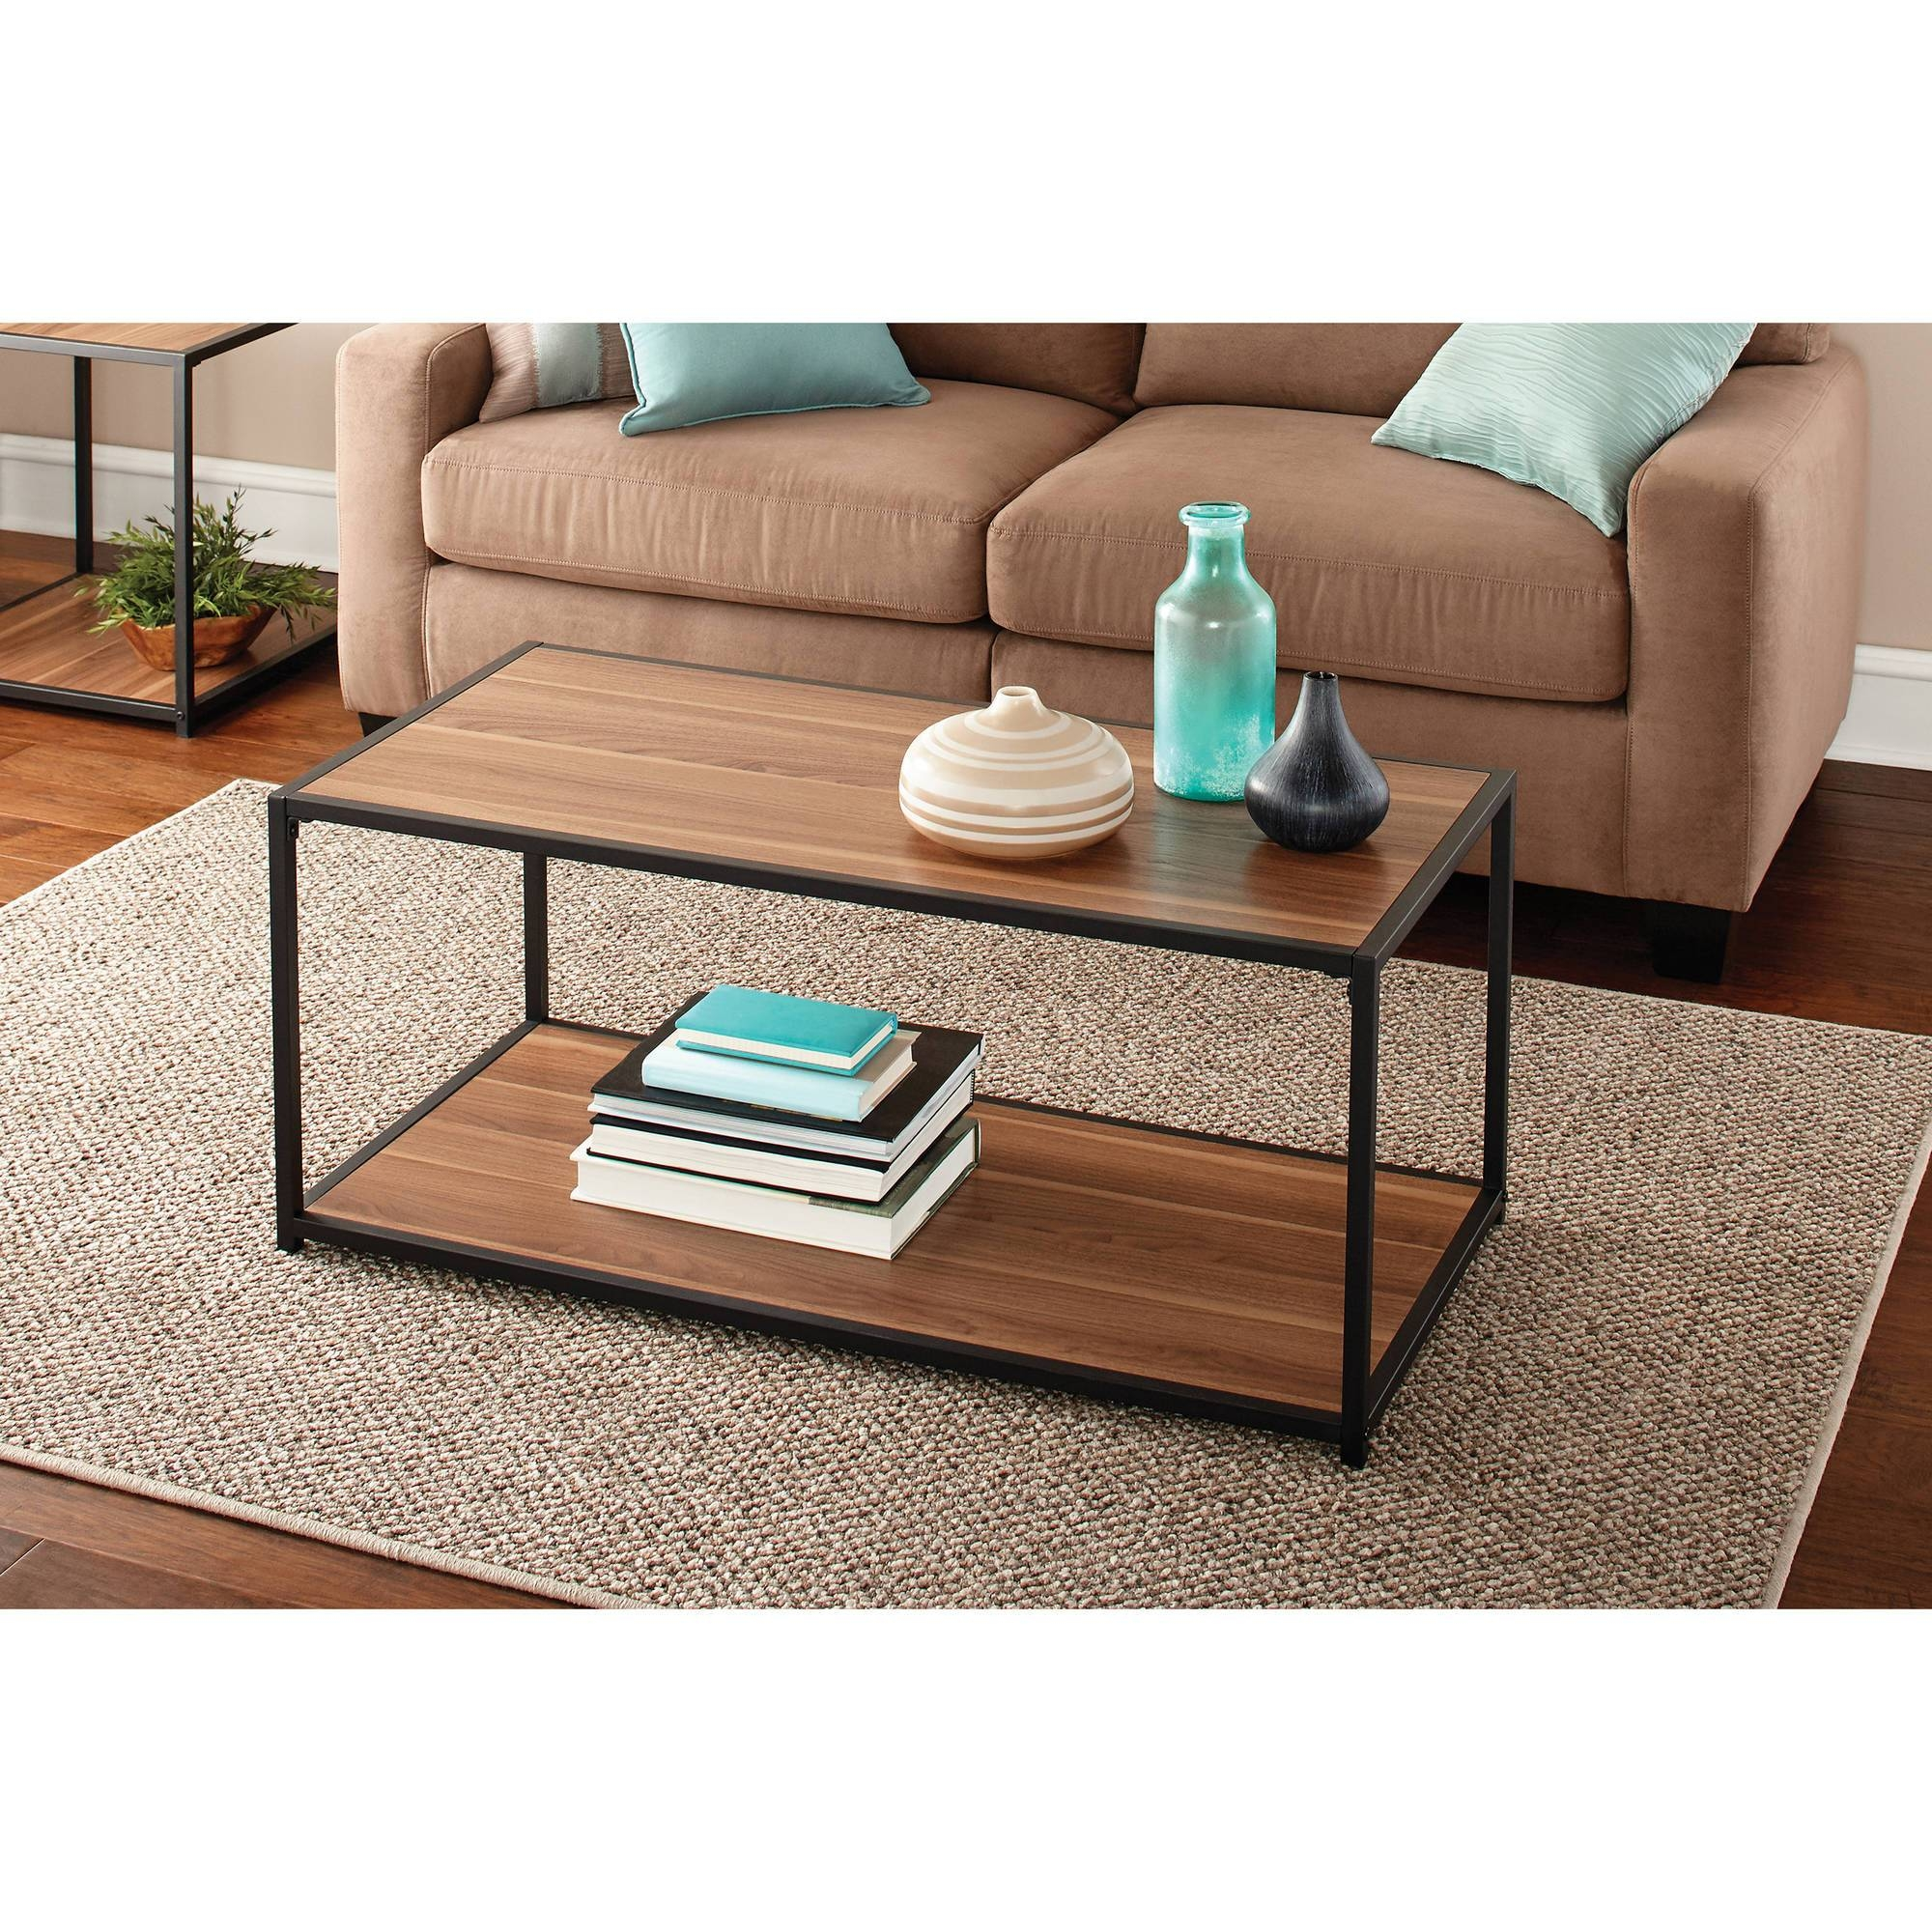 30 Collection of Glass Lift Top Coffee Tables